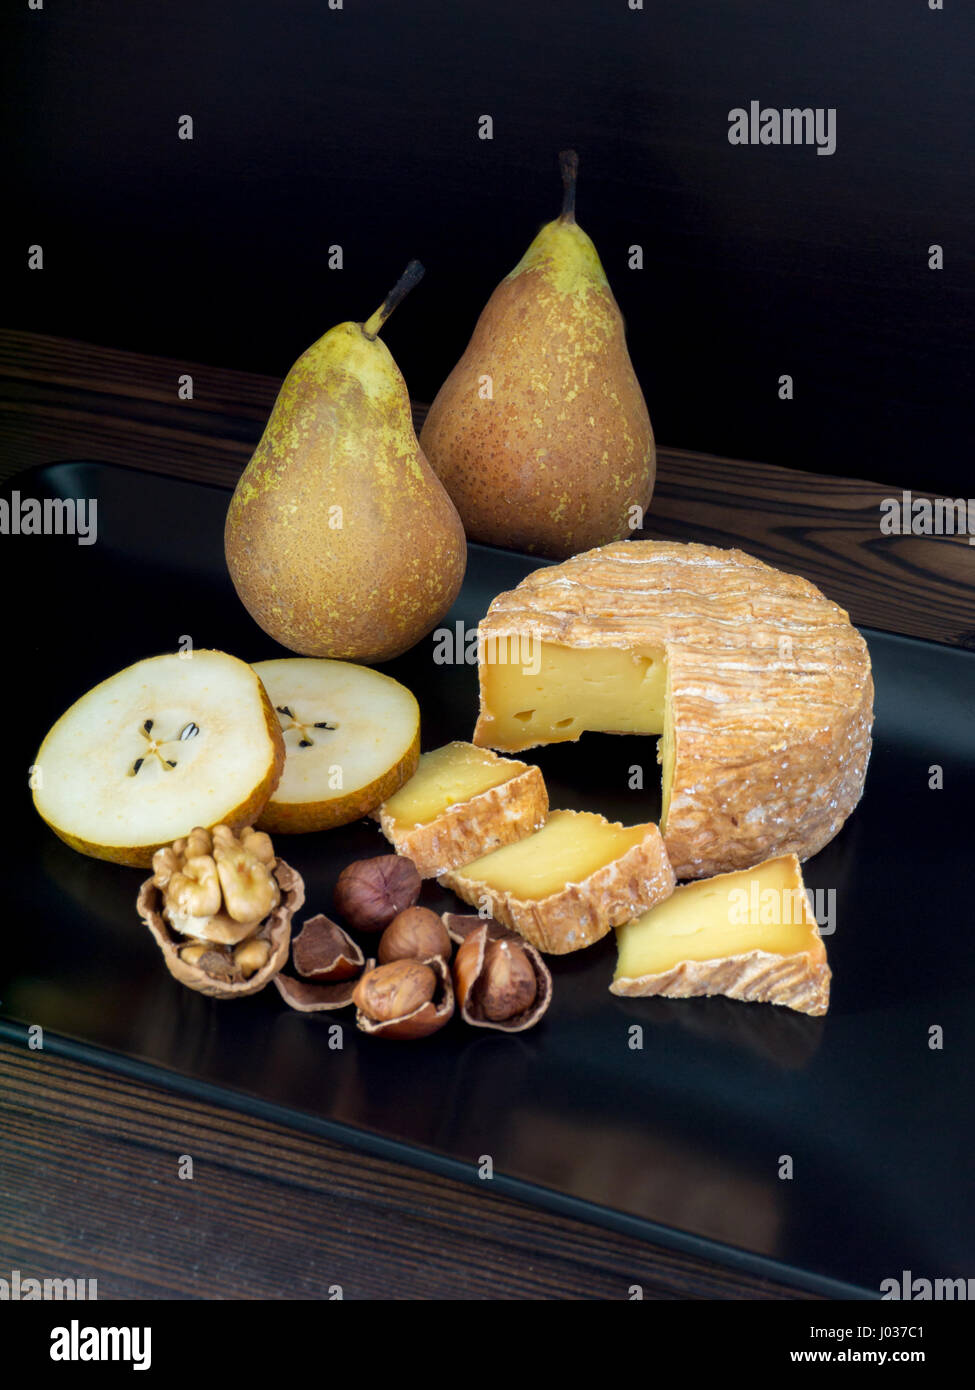 Soft washed-rind cheese, walnut, hazelnuts and pears on the black plate - Stock Image